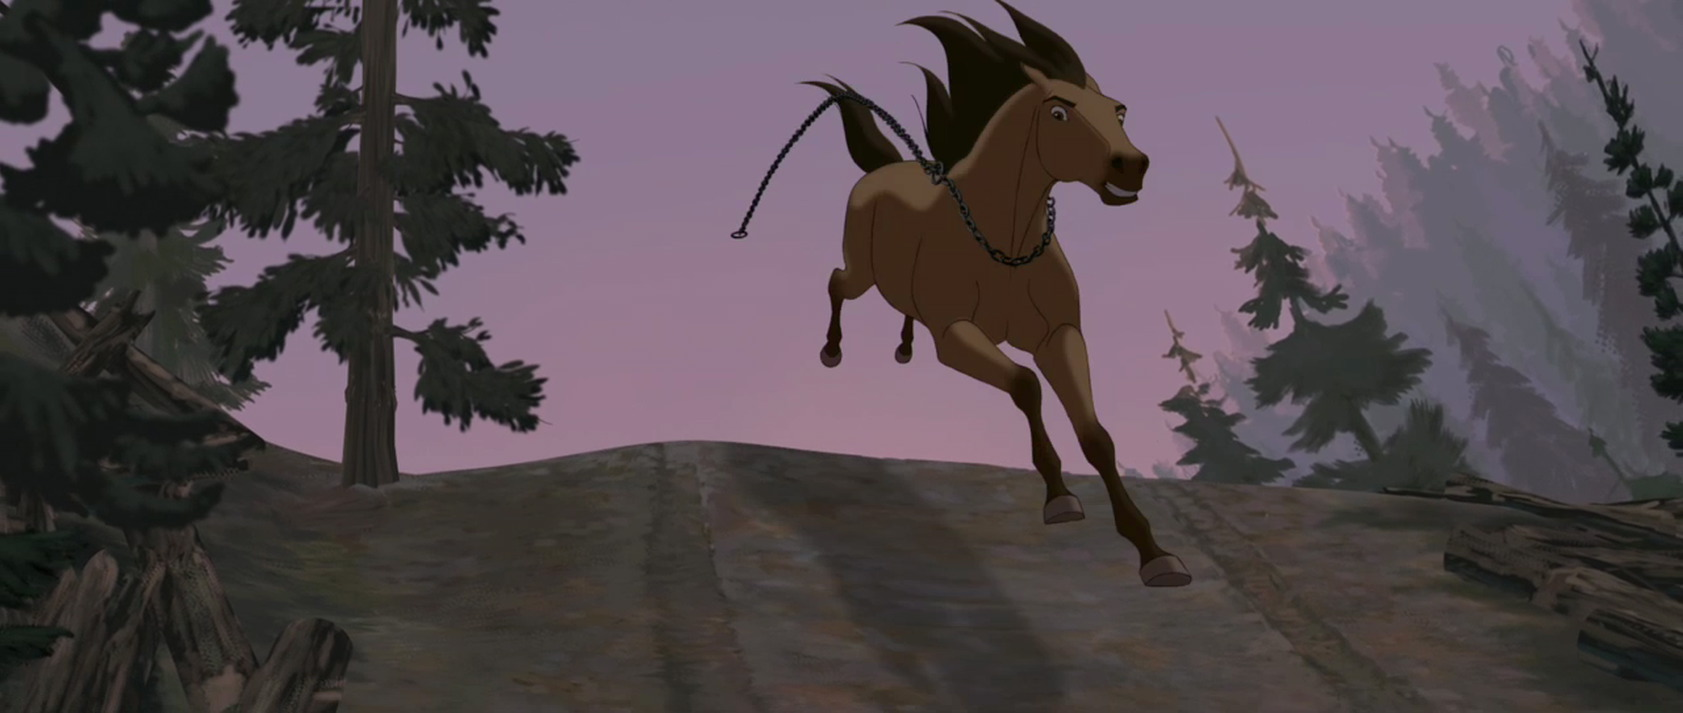 spirit-stallion-disneyscreencaps.com-7388.jpg